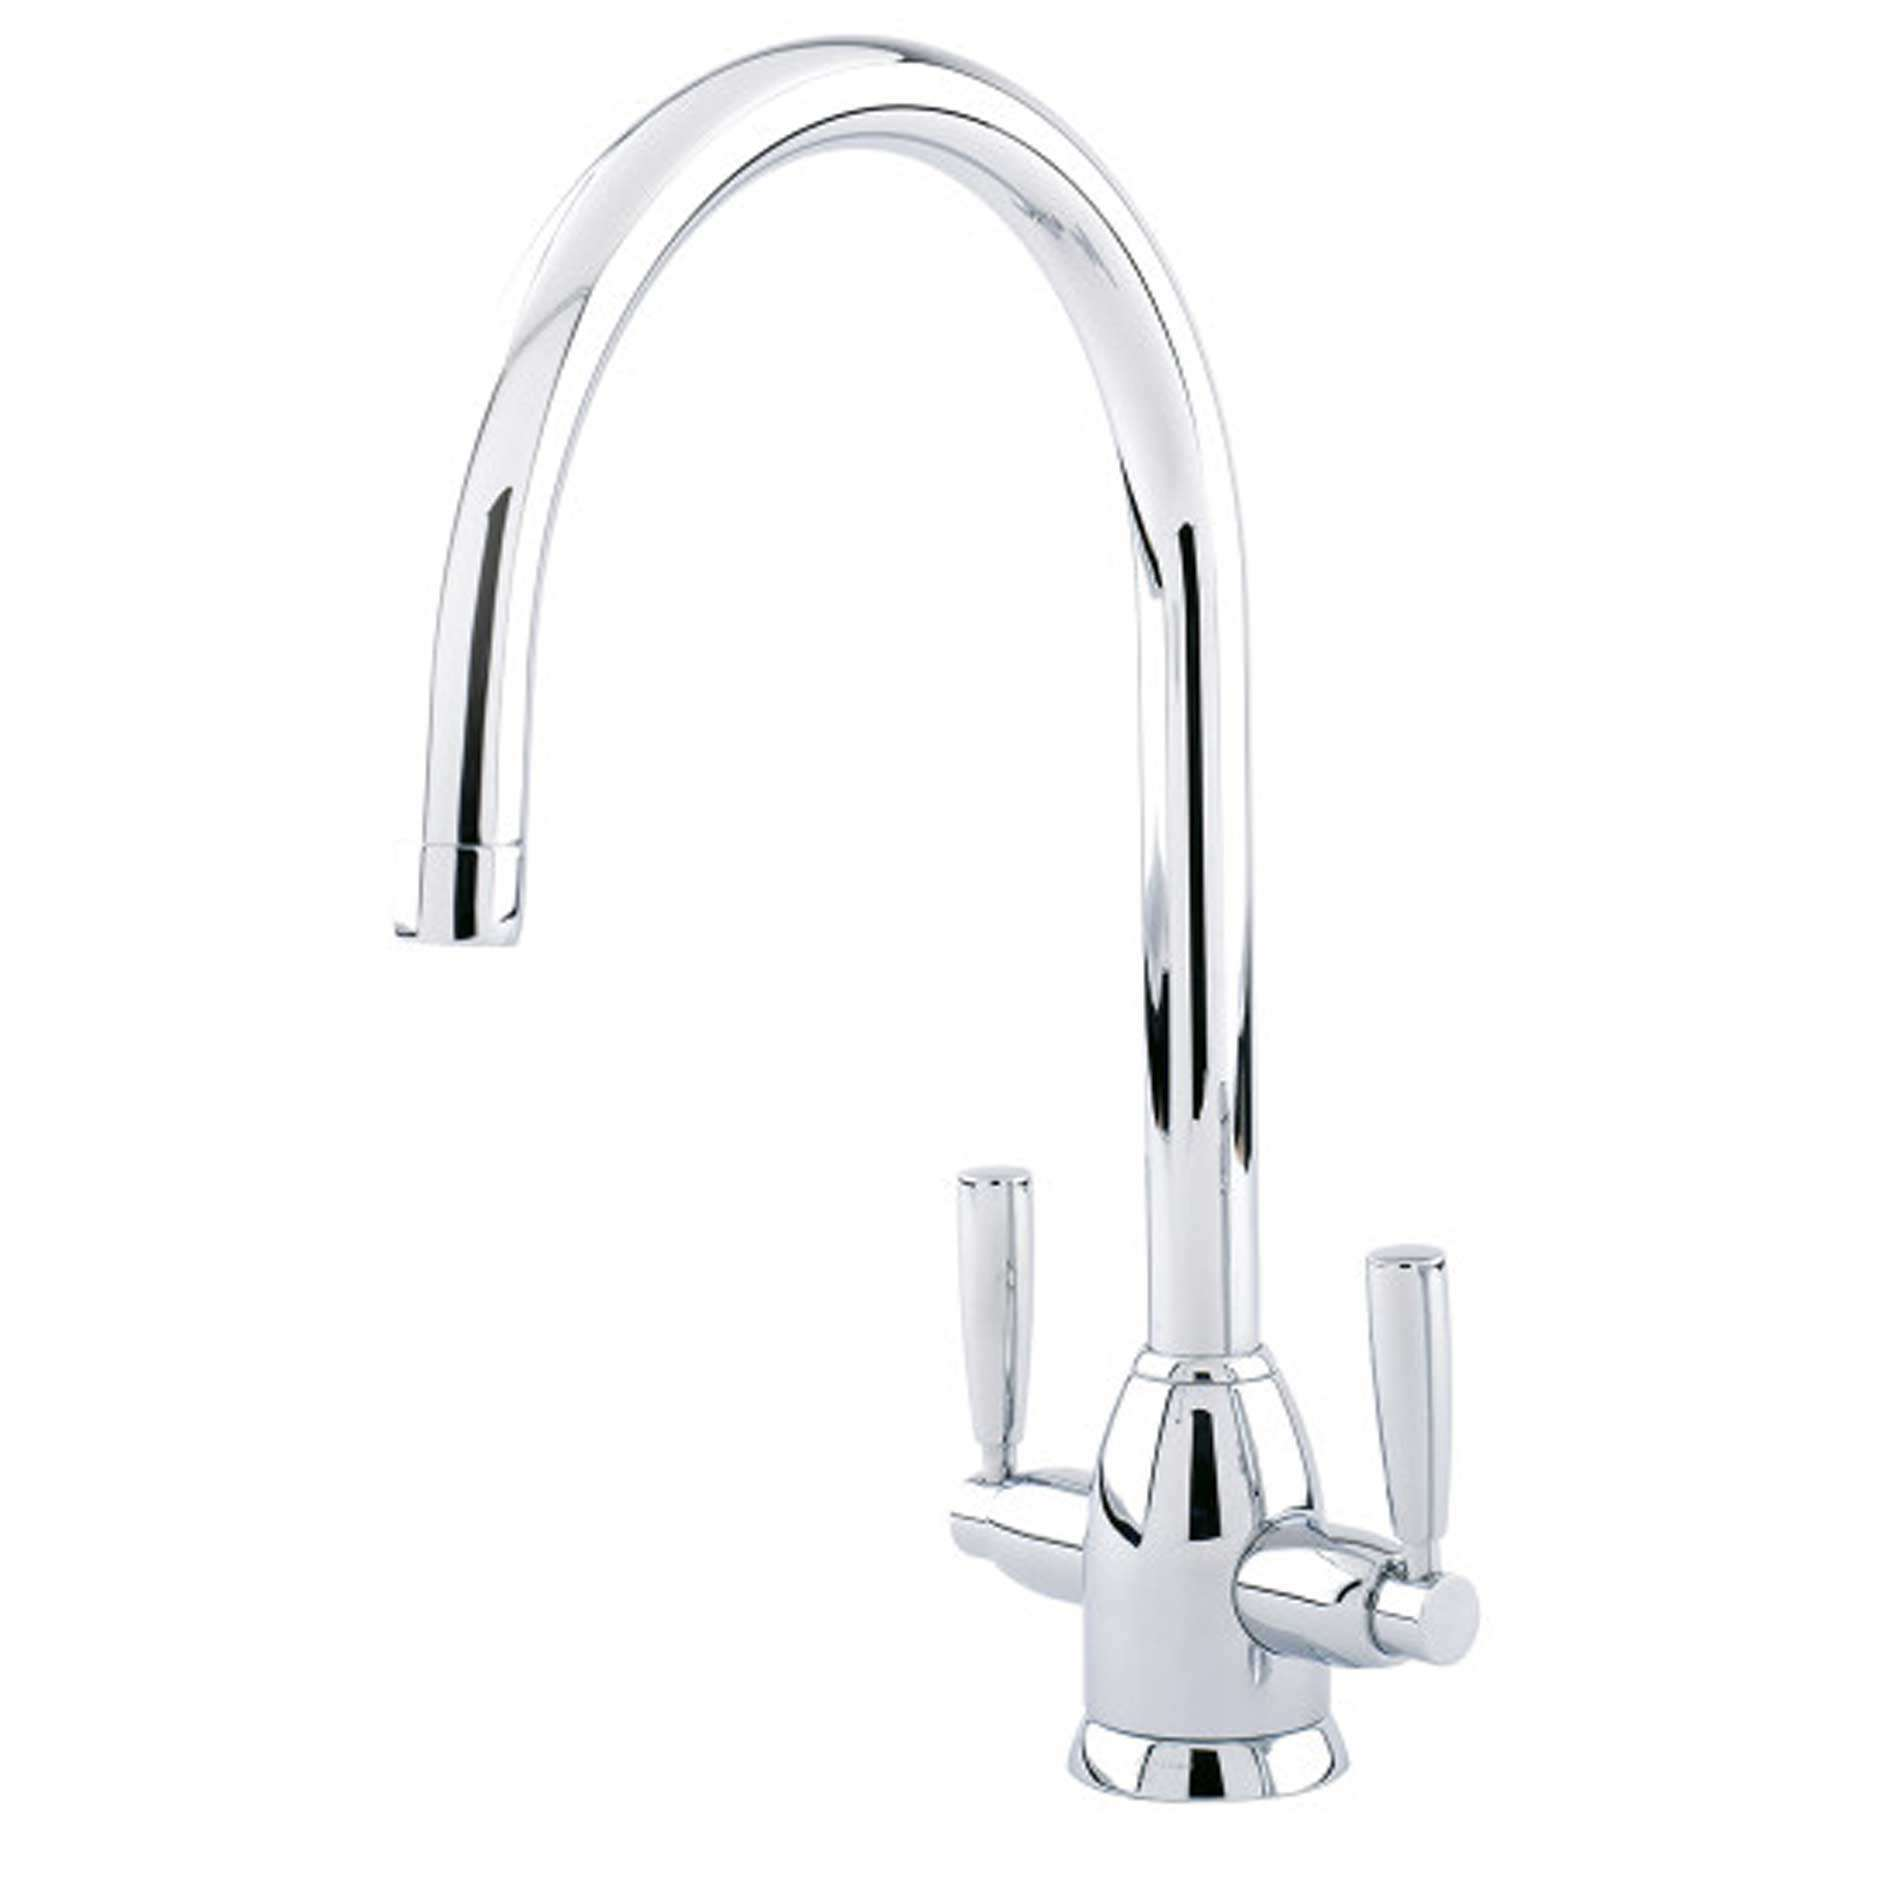 Picture of Oberon 4861 Chrome Tap